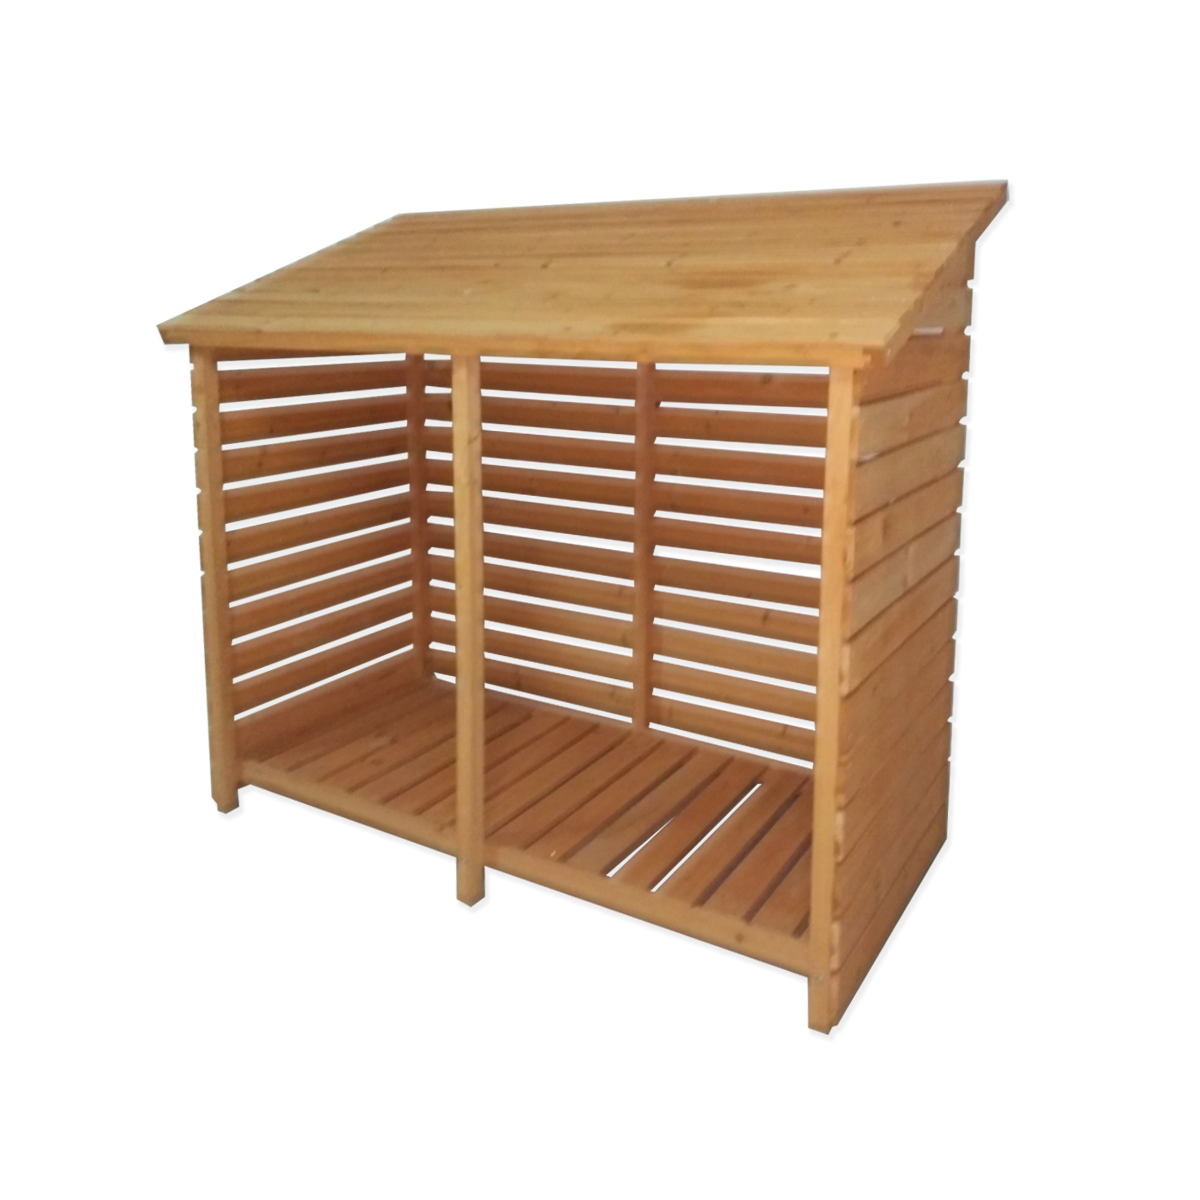 Firewood Storage Shed For Wood Burner Log Store Slatted